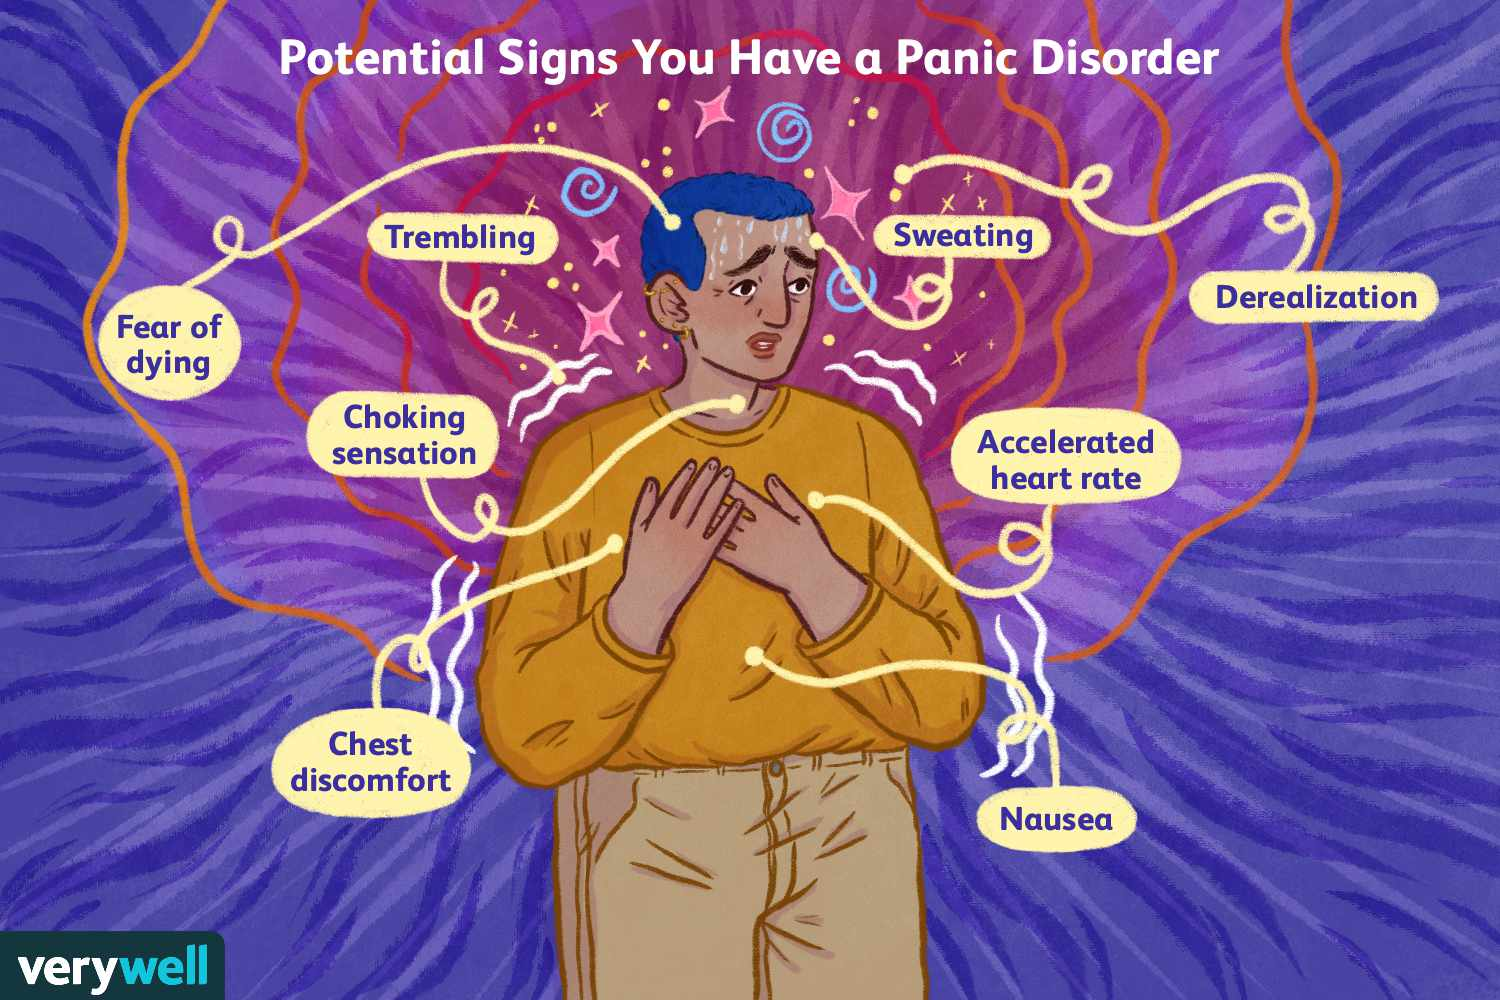 Potential Signs You Have a Panic Disorder